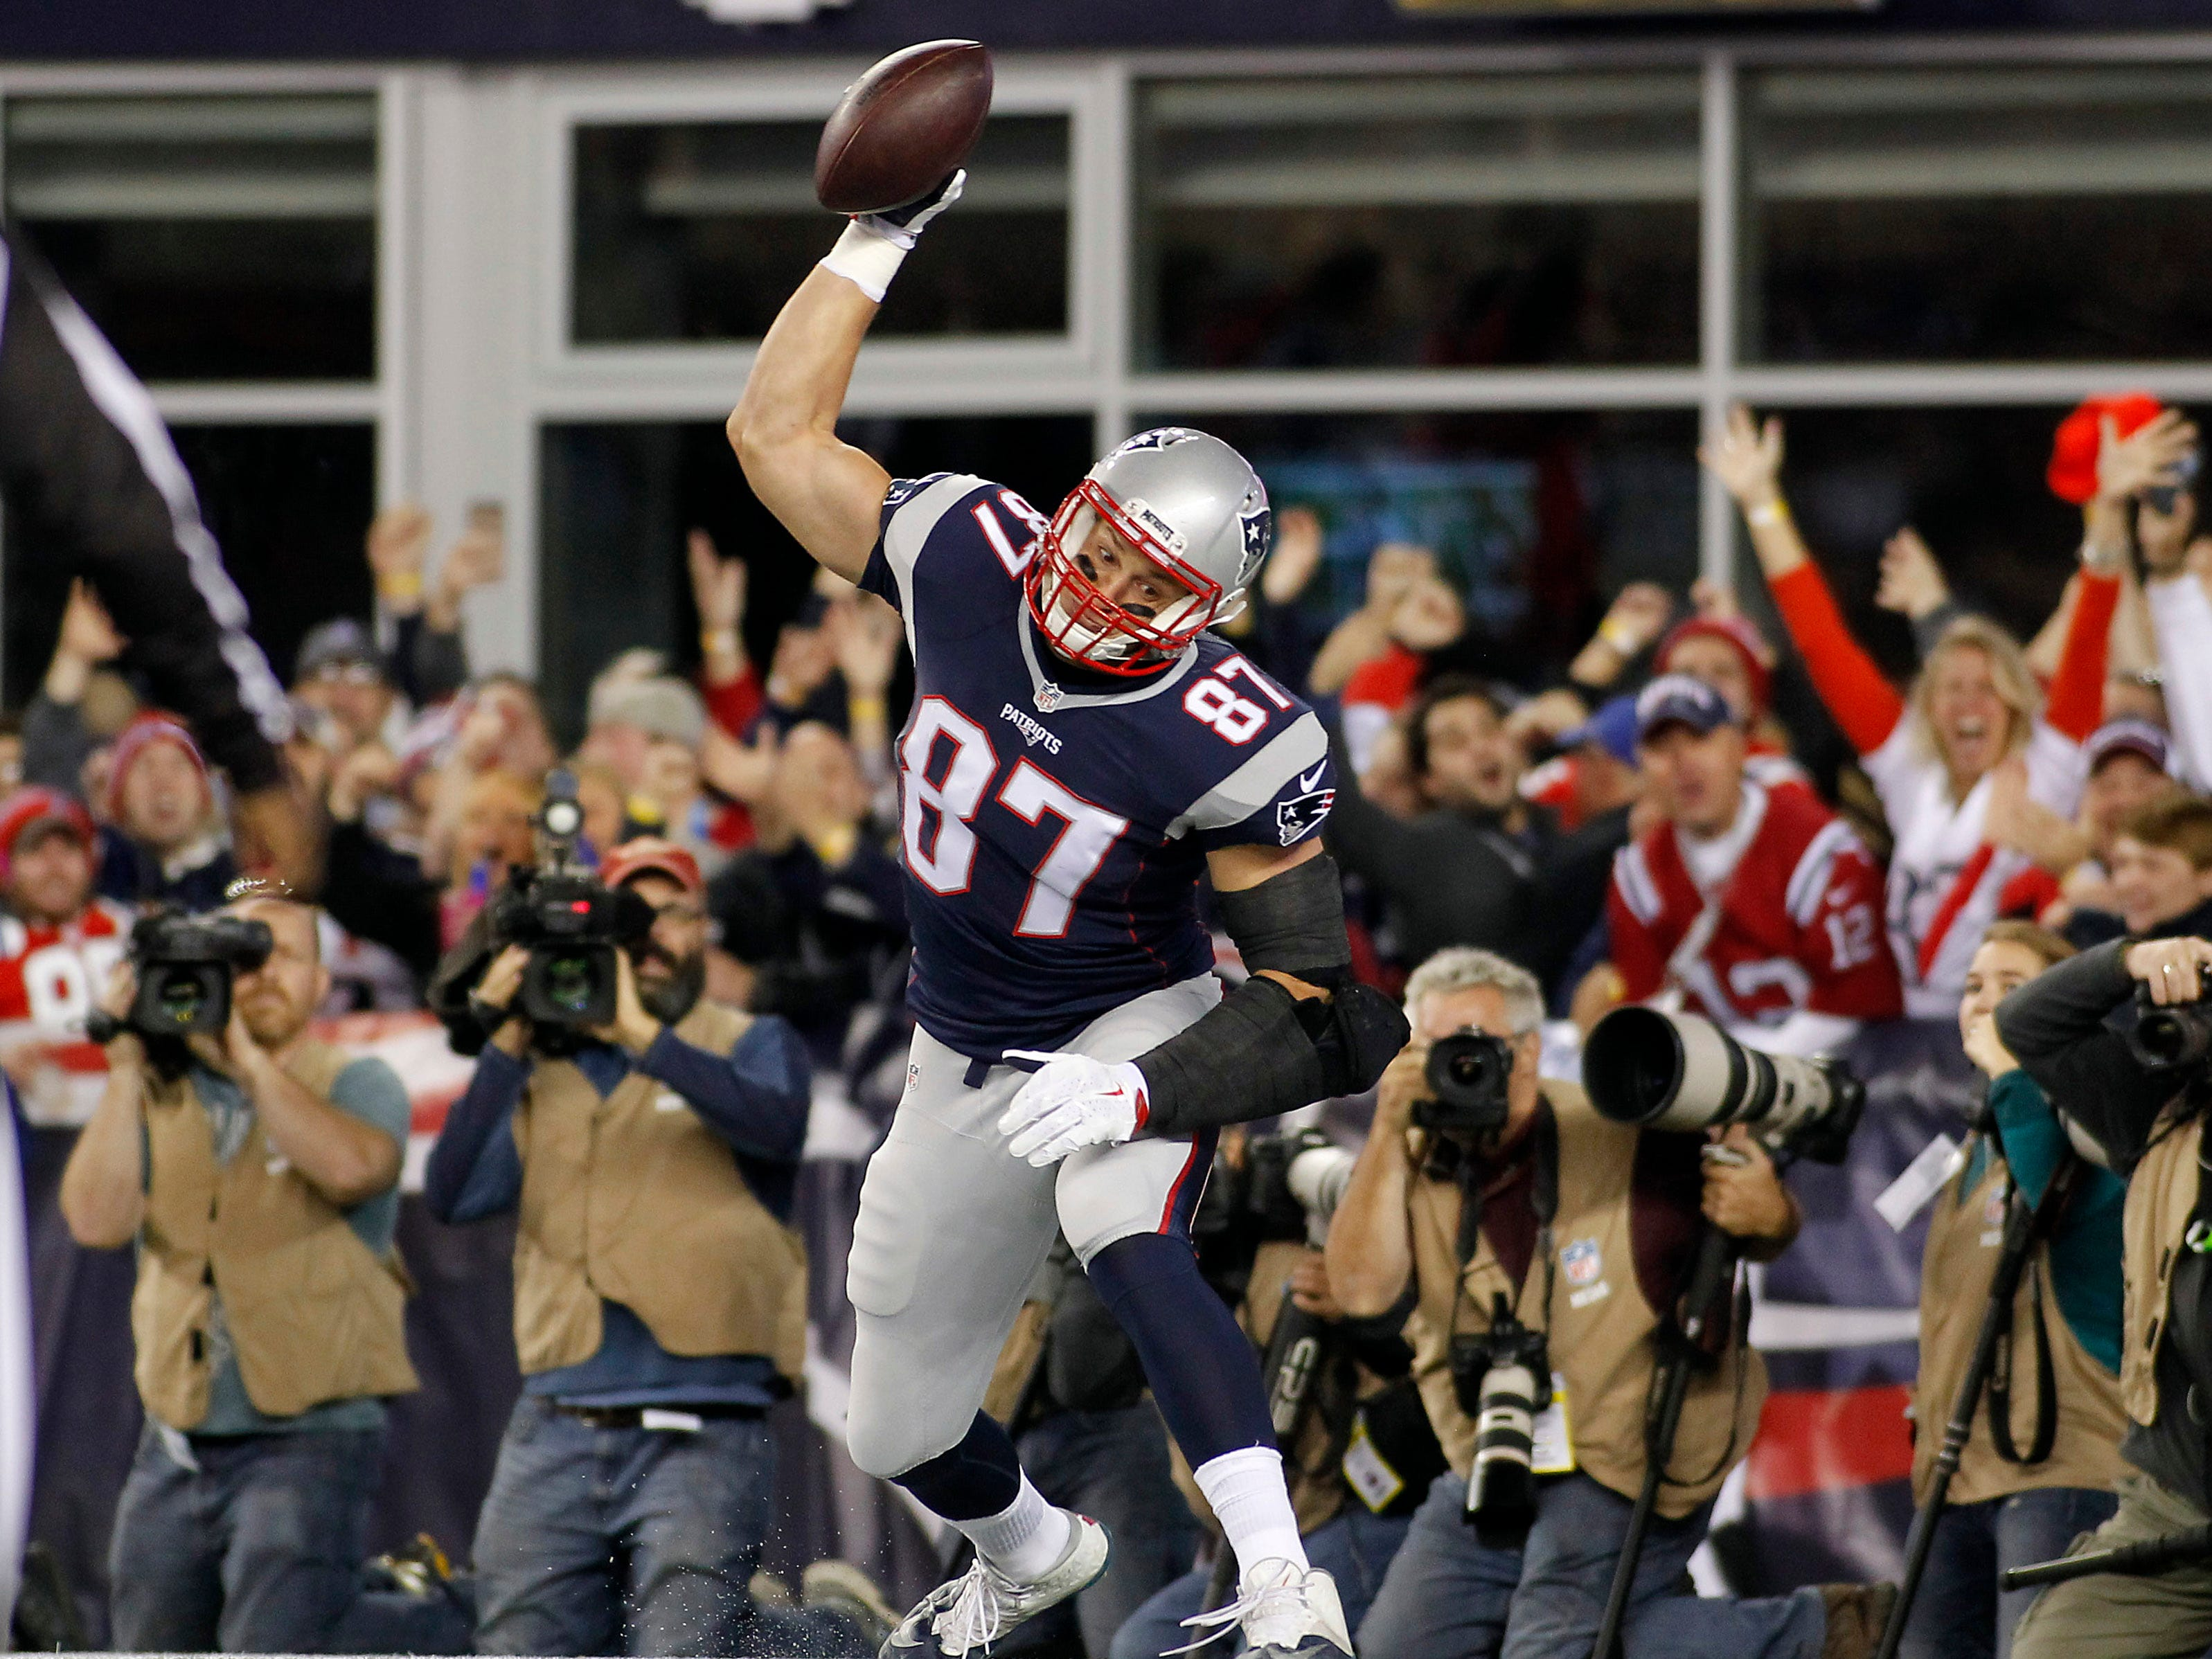 Oct. 29, 2015: Rob Gronkowski spikes the ball after scoring a touchdown against the Miami Dolphins during the first quarter at Gillette Stadium.